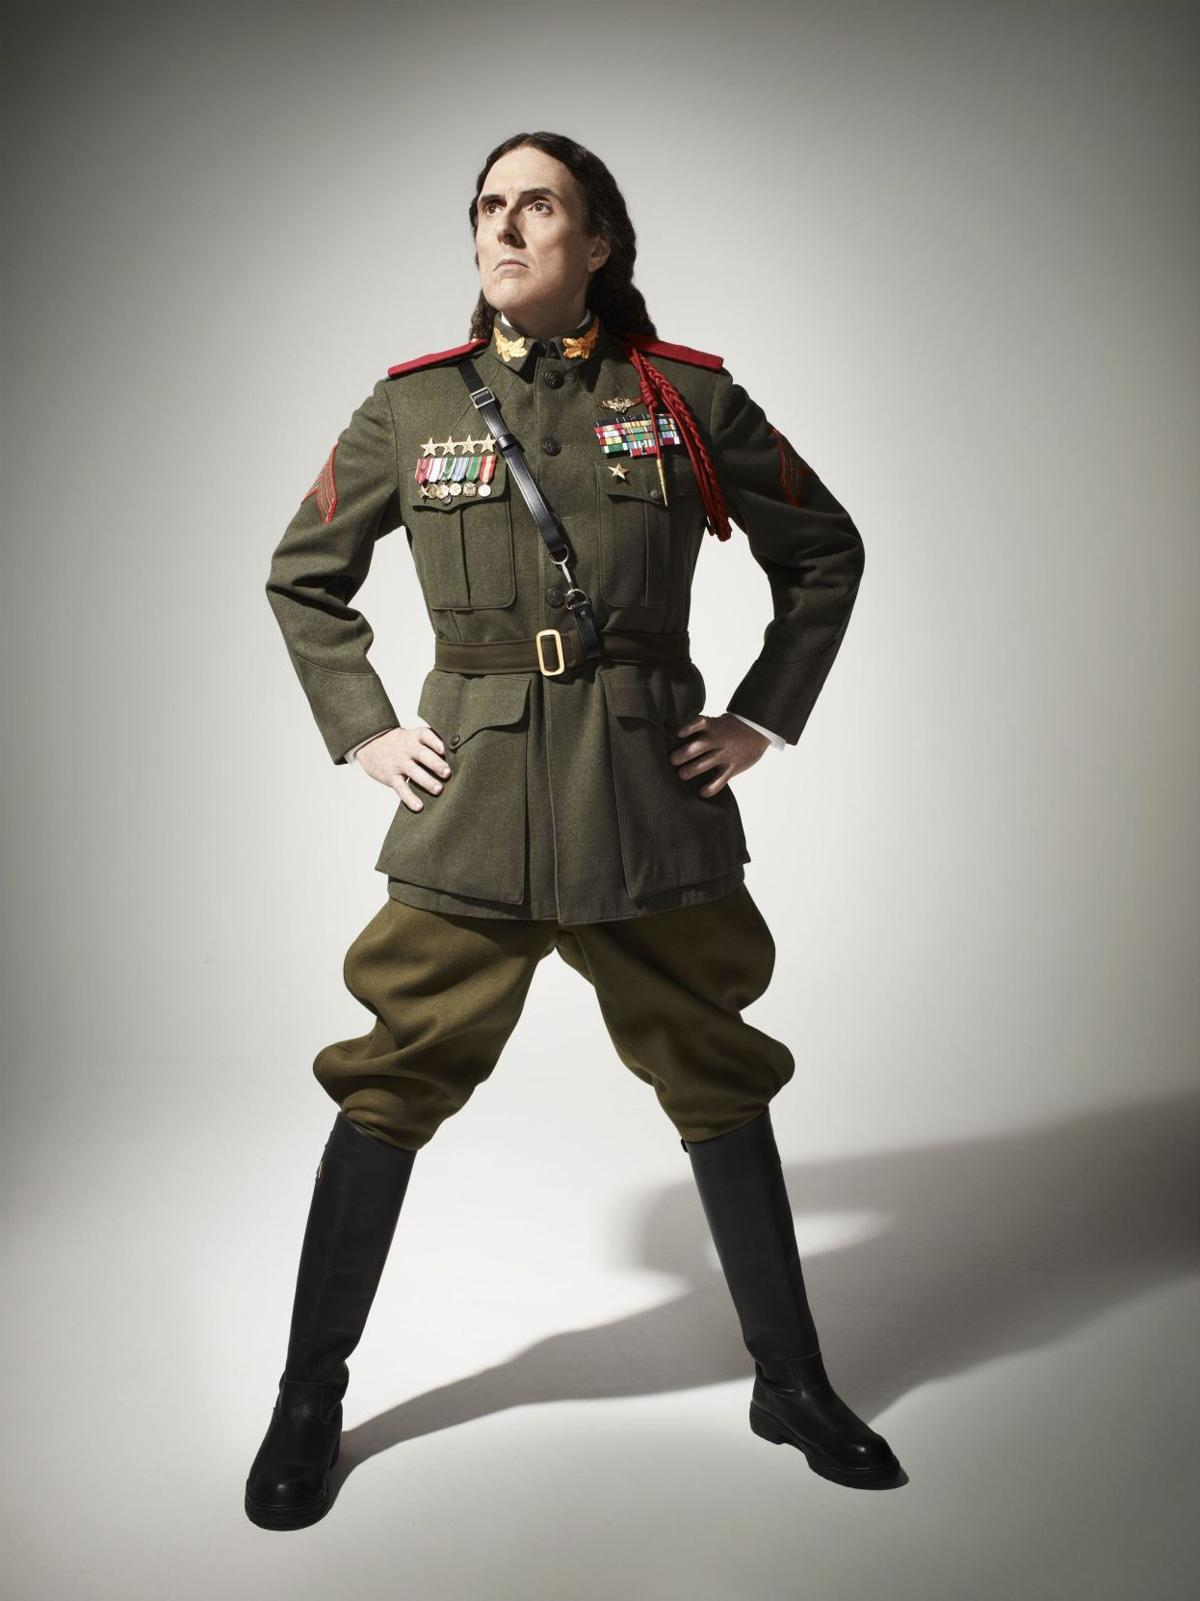 'Weird Al' Yankovic's Mandatory World Tour includes stop in North Charleston